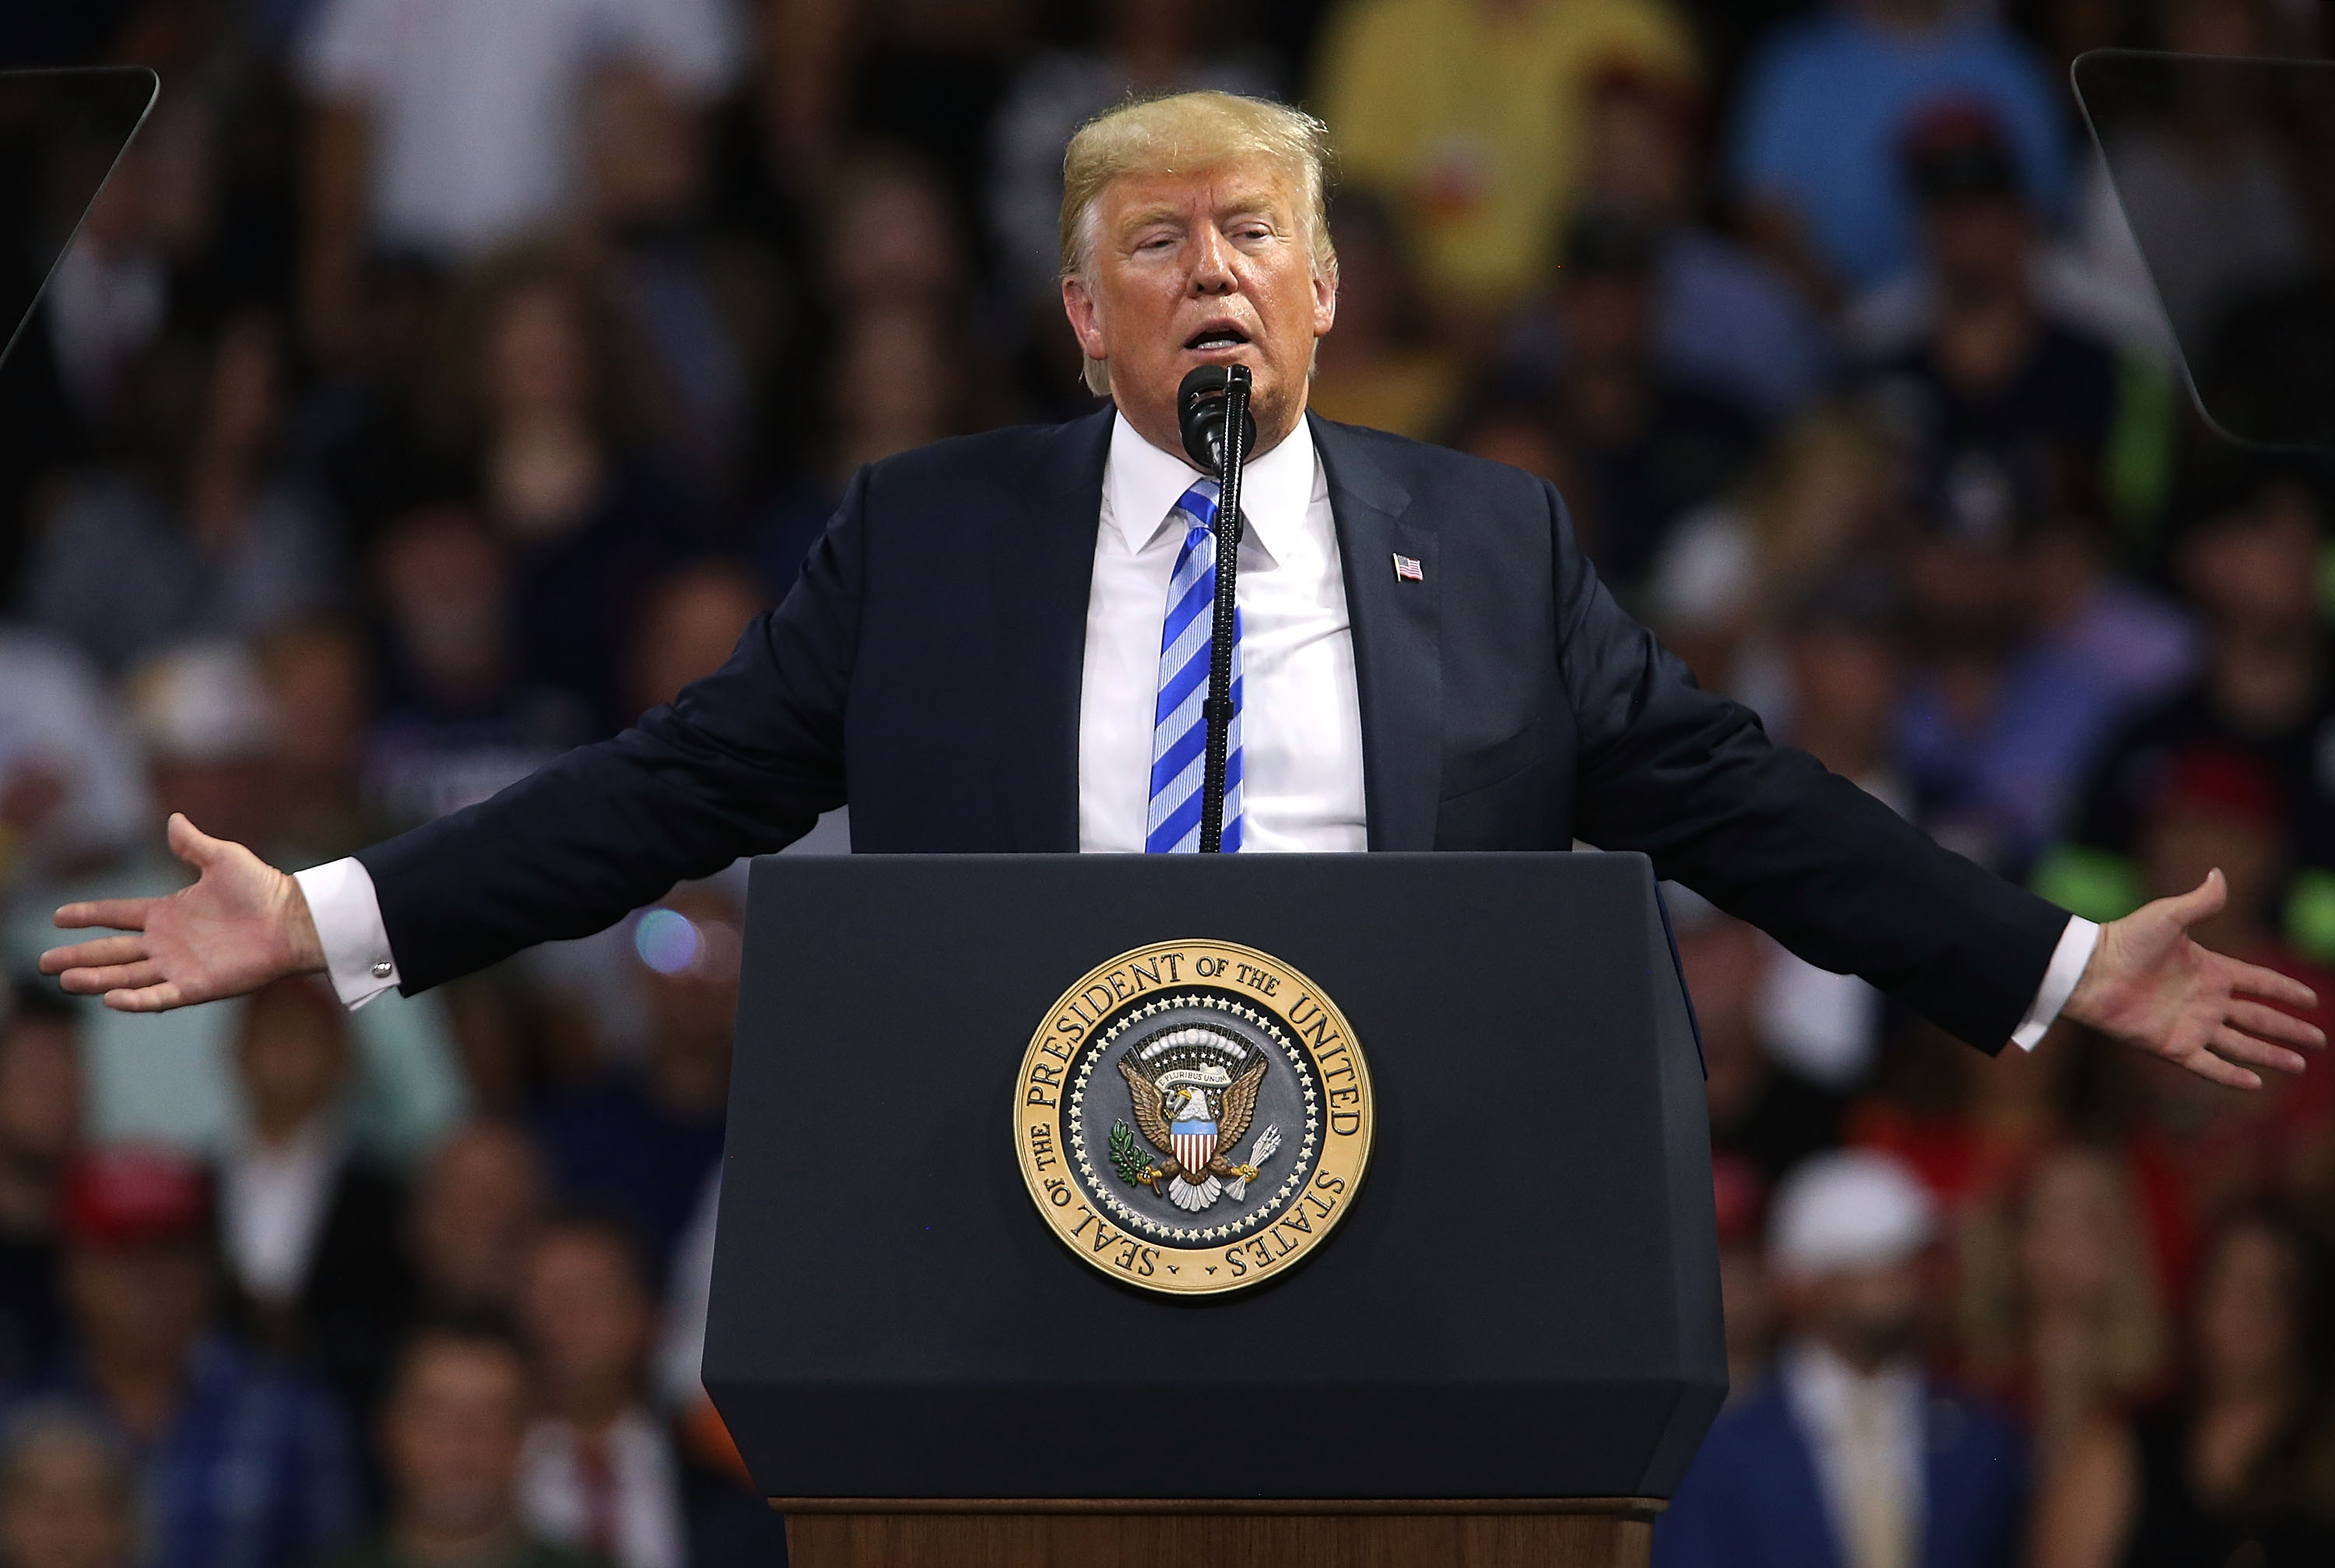 President Donald Trump speaks at a rally on August 21, 2018 in Charleston, W.Va.